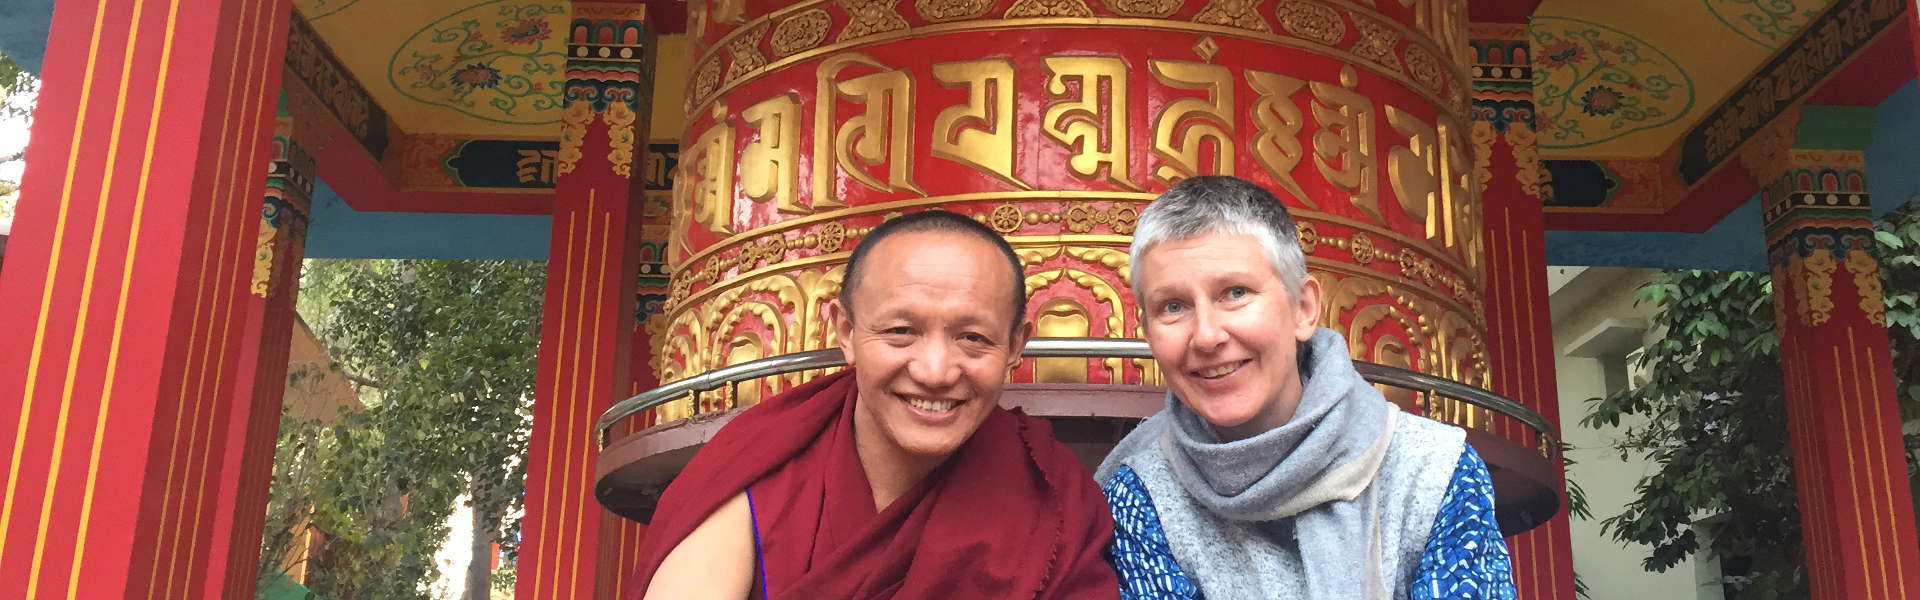 Our resident Geshe, Ngawang Rabga-la and our translator, Melanie Eikema